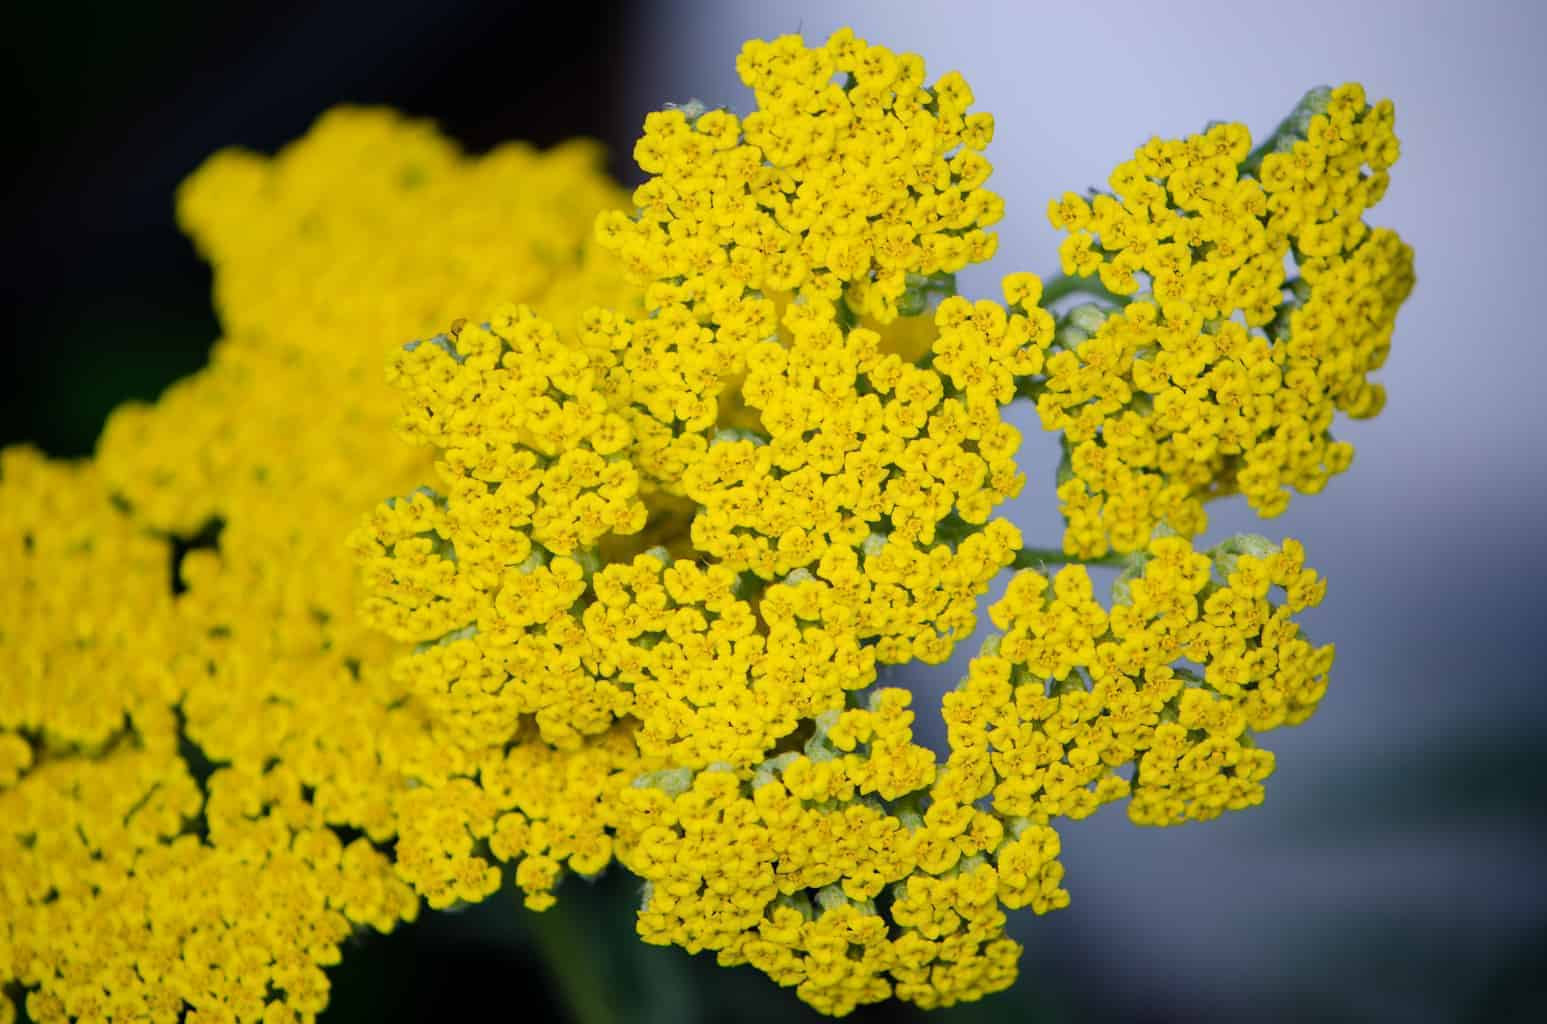 Medicinal Uses of Yarrow PLUS Yarrow Tincture